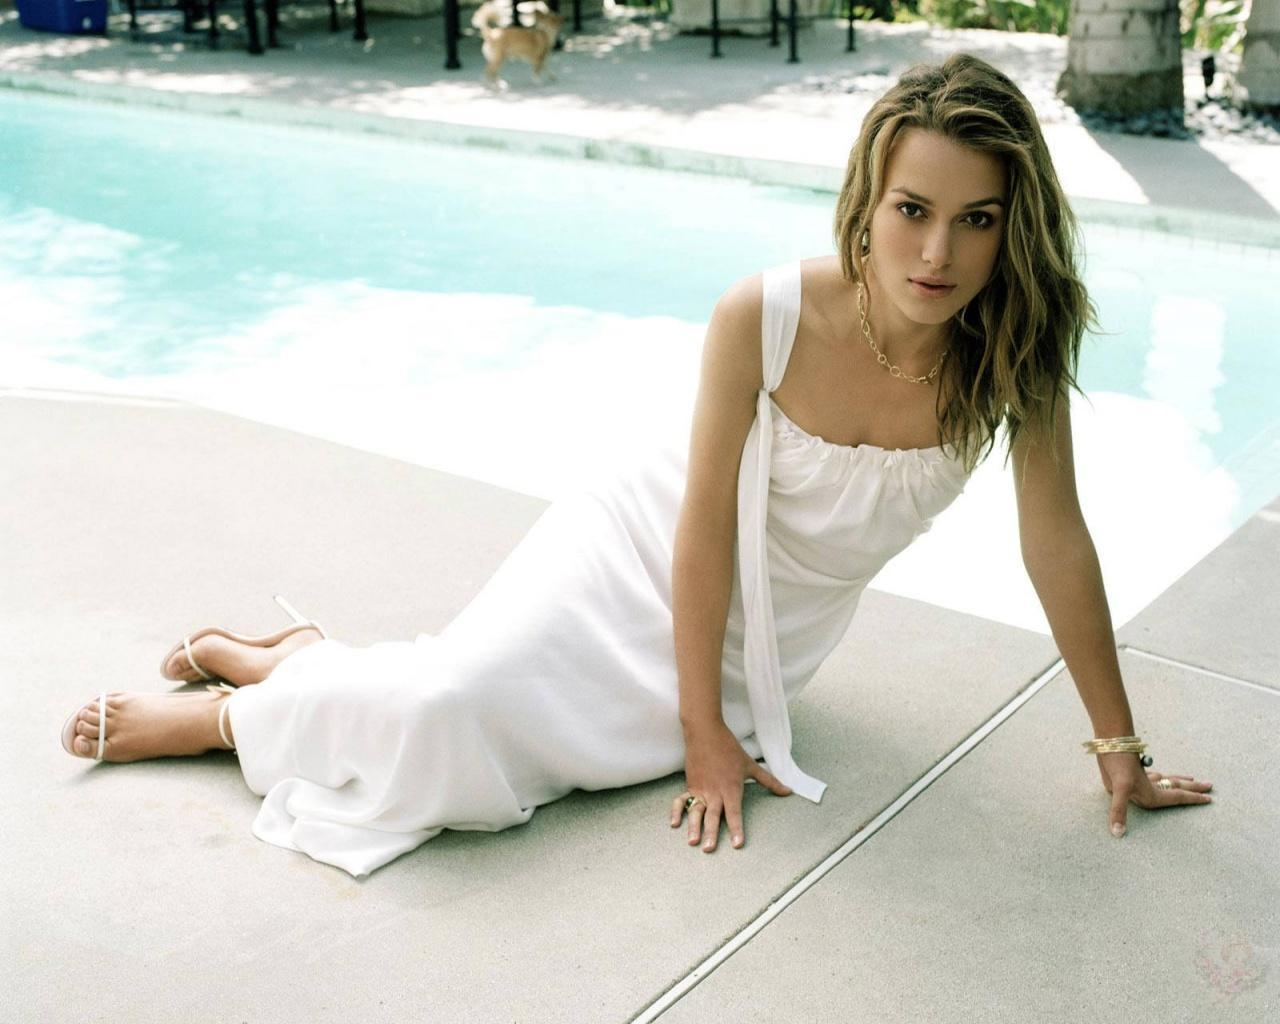 Hot Wallpapers-Keira Knightley ~ Fun Hungama